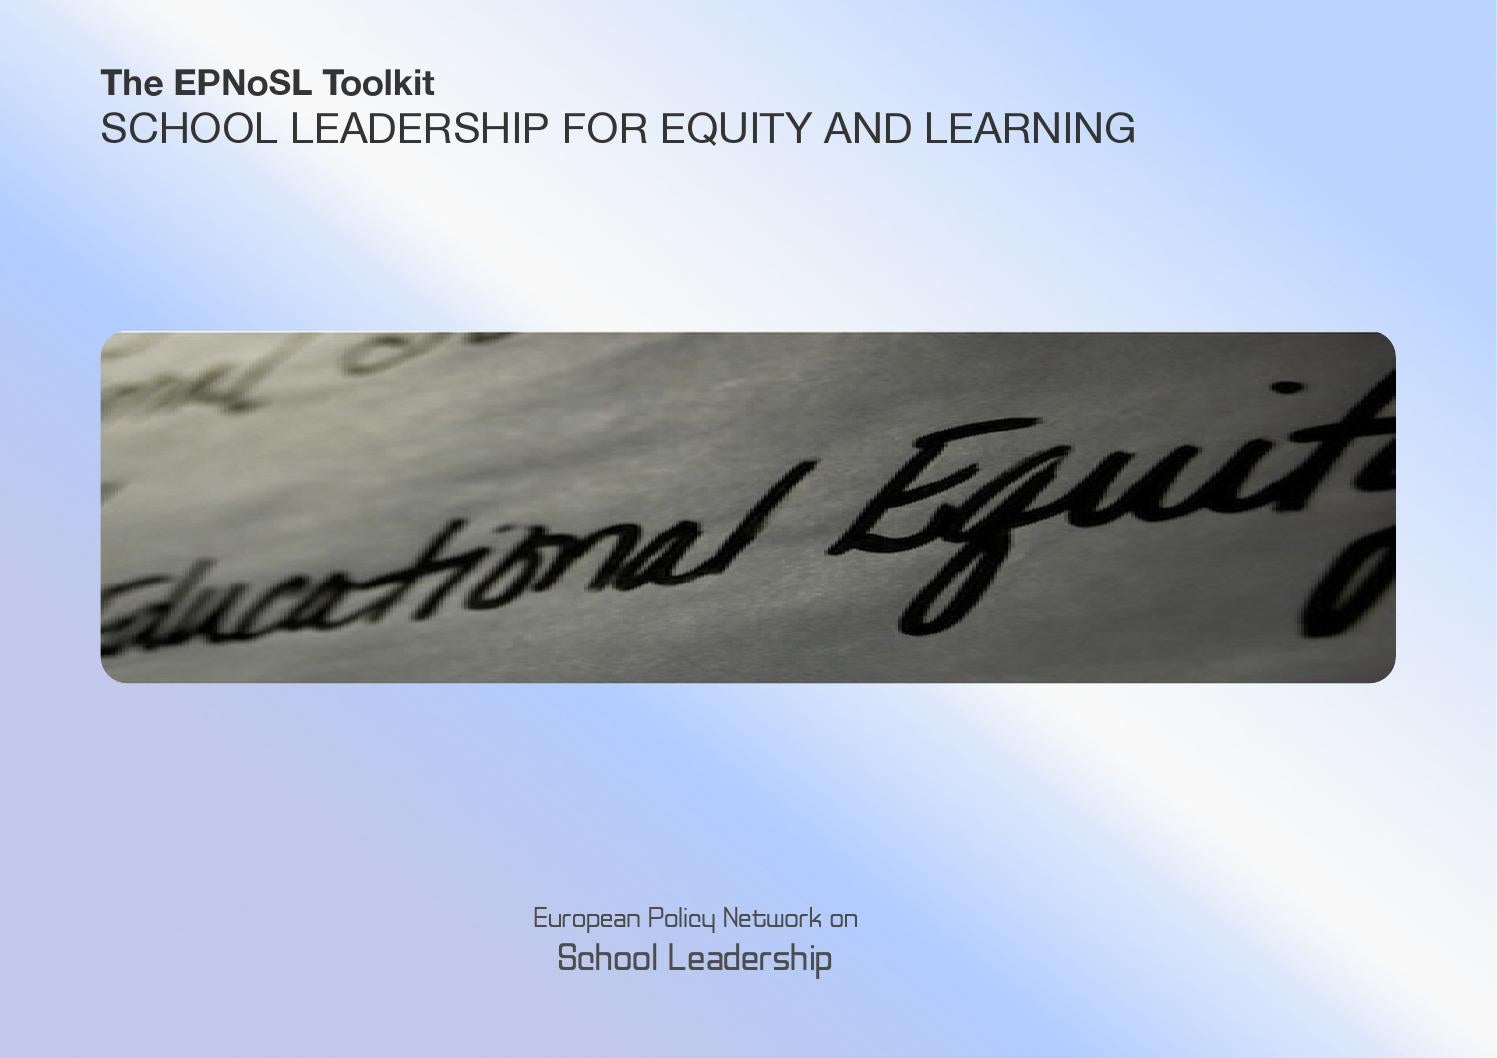 School leadership for equity and learning toolkit by epnosl issuu fandeluxe Gallery